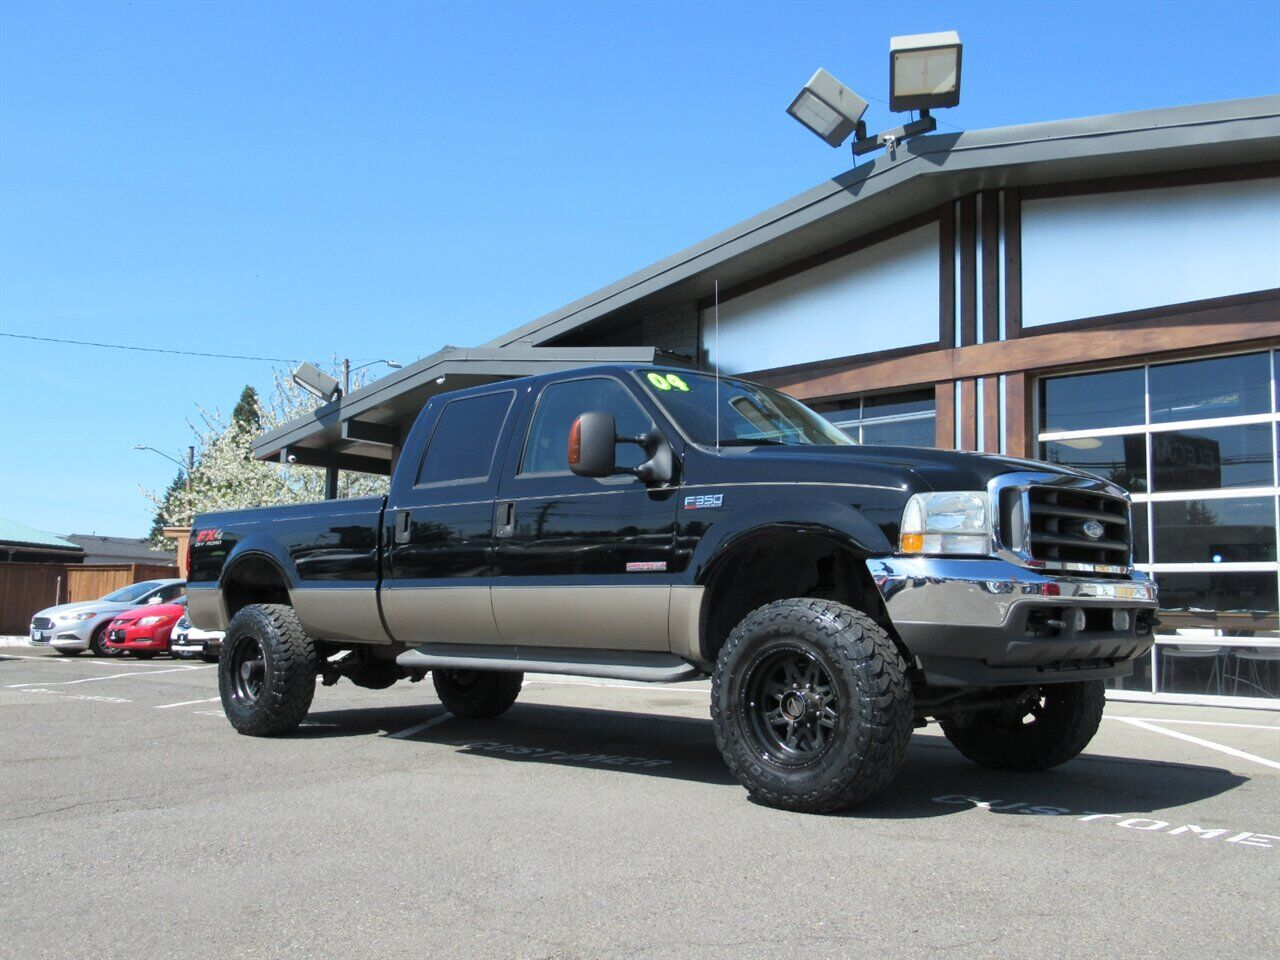 2004 Ford F-350 Lariat / 4x4 / lifted / long bed / DIESEL TRUCK Beaverton OR